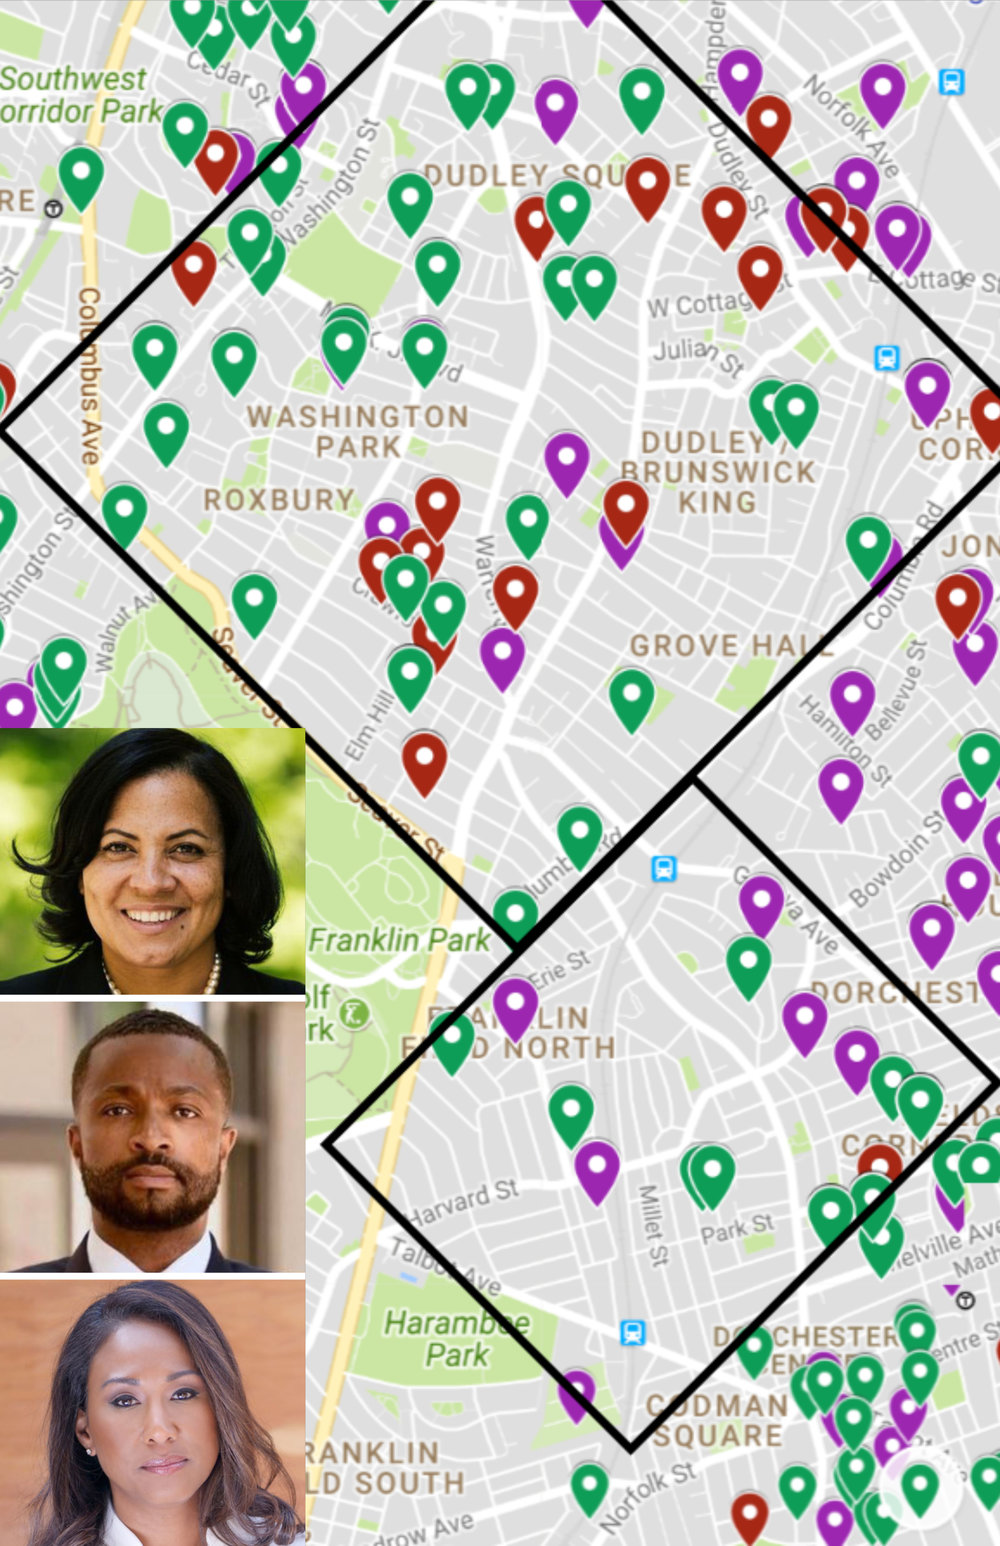 The OCPF contributions from the city's most prosecuted neighborhoods mapped for all three candidates of color